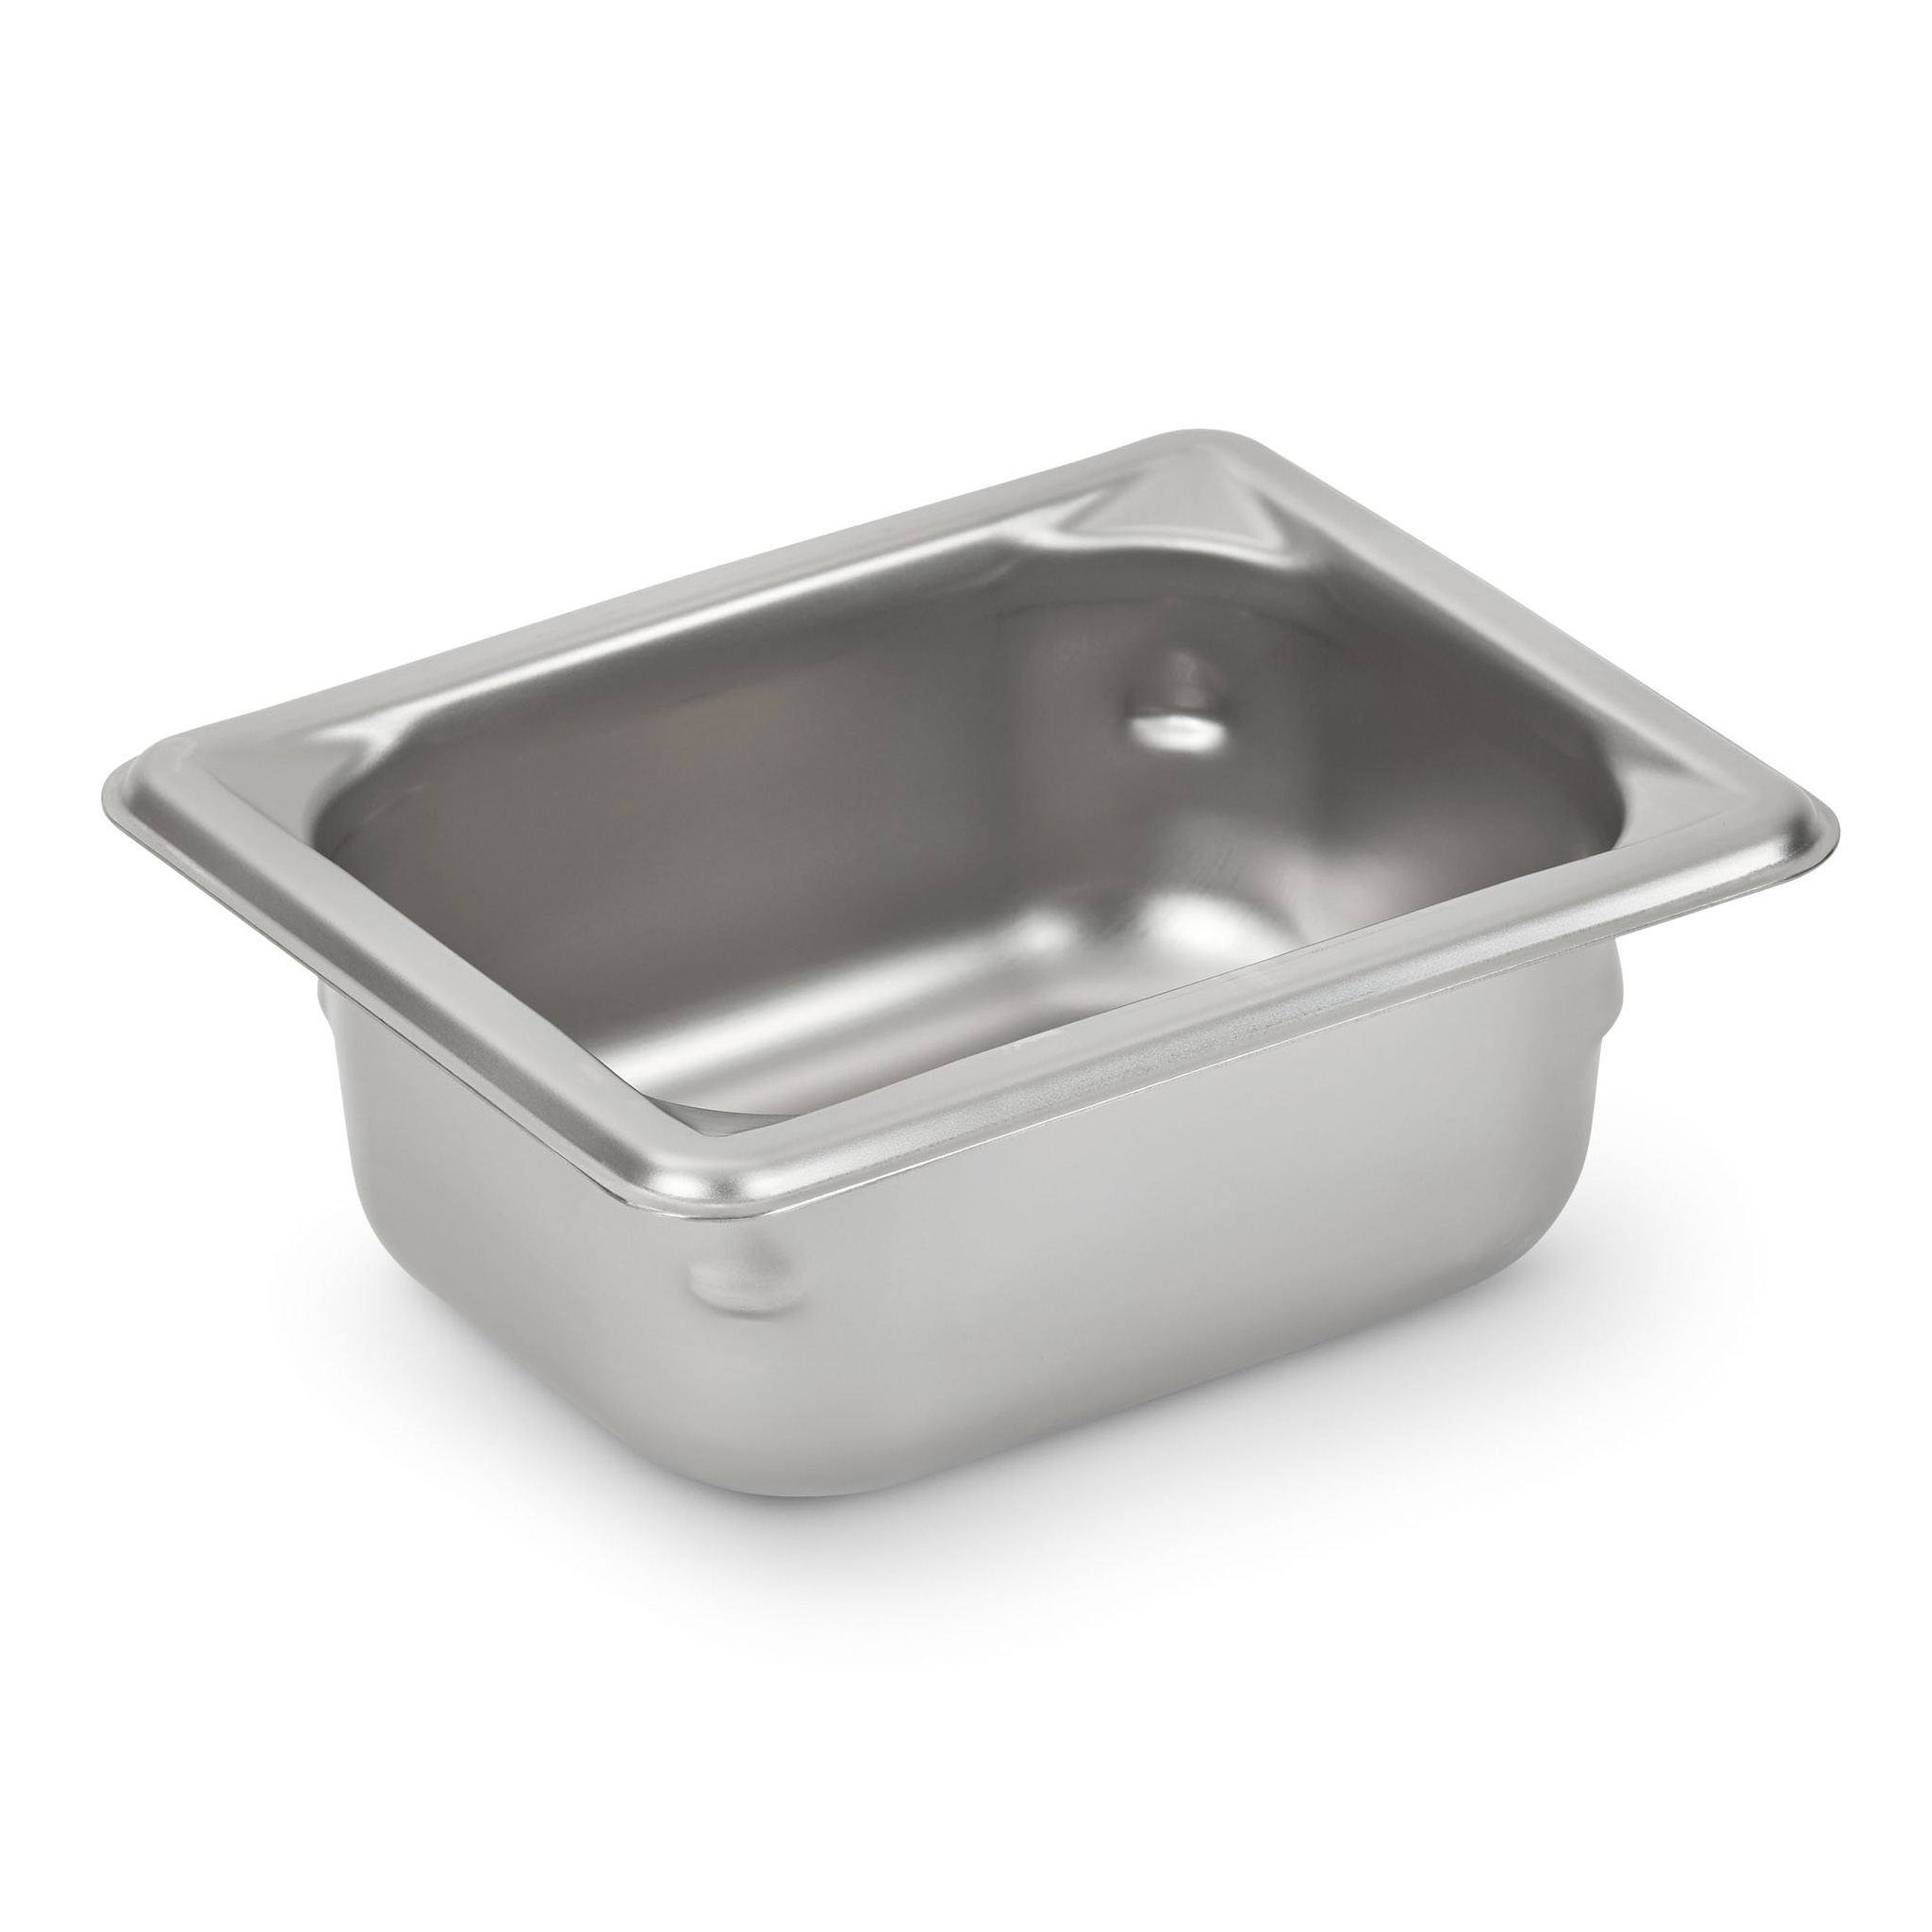 Vollrath 30822 steam table pan, stainless steel